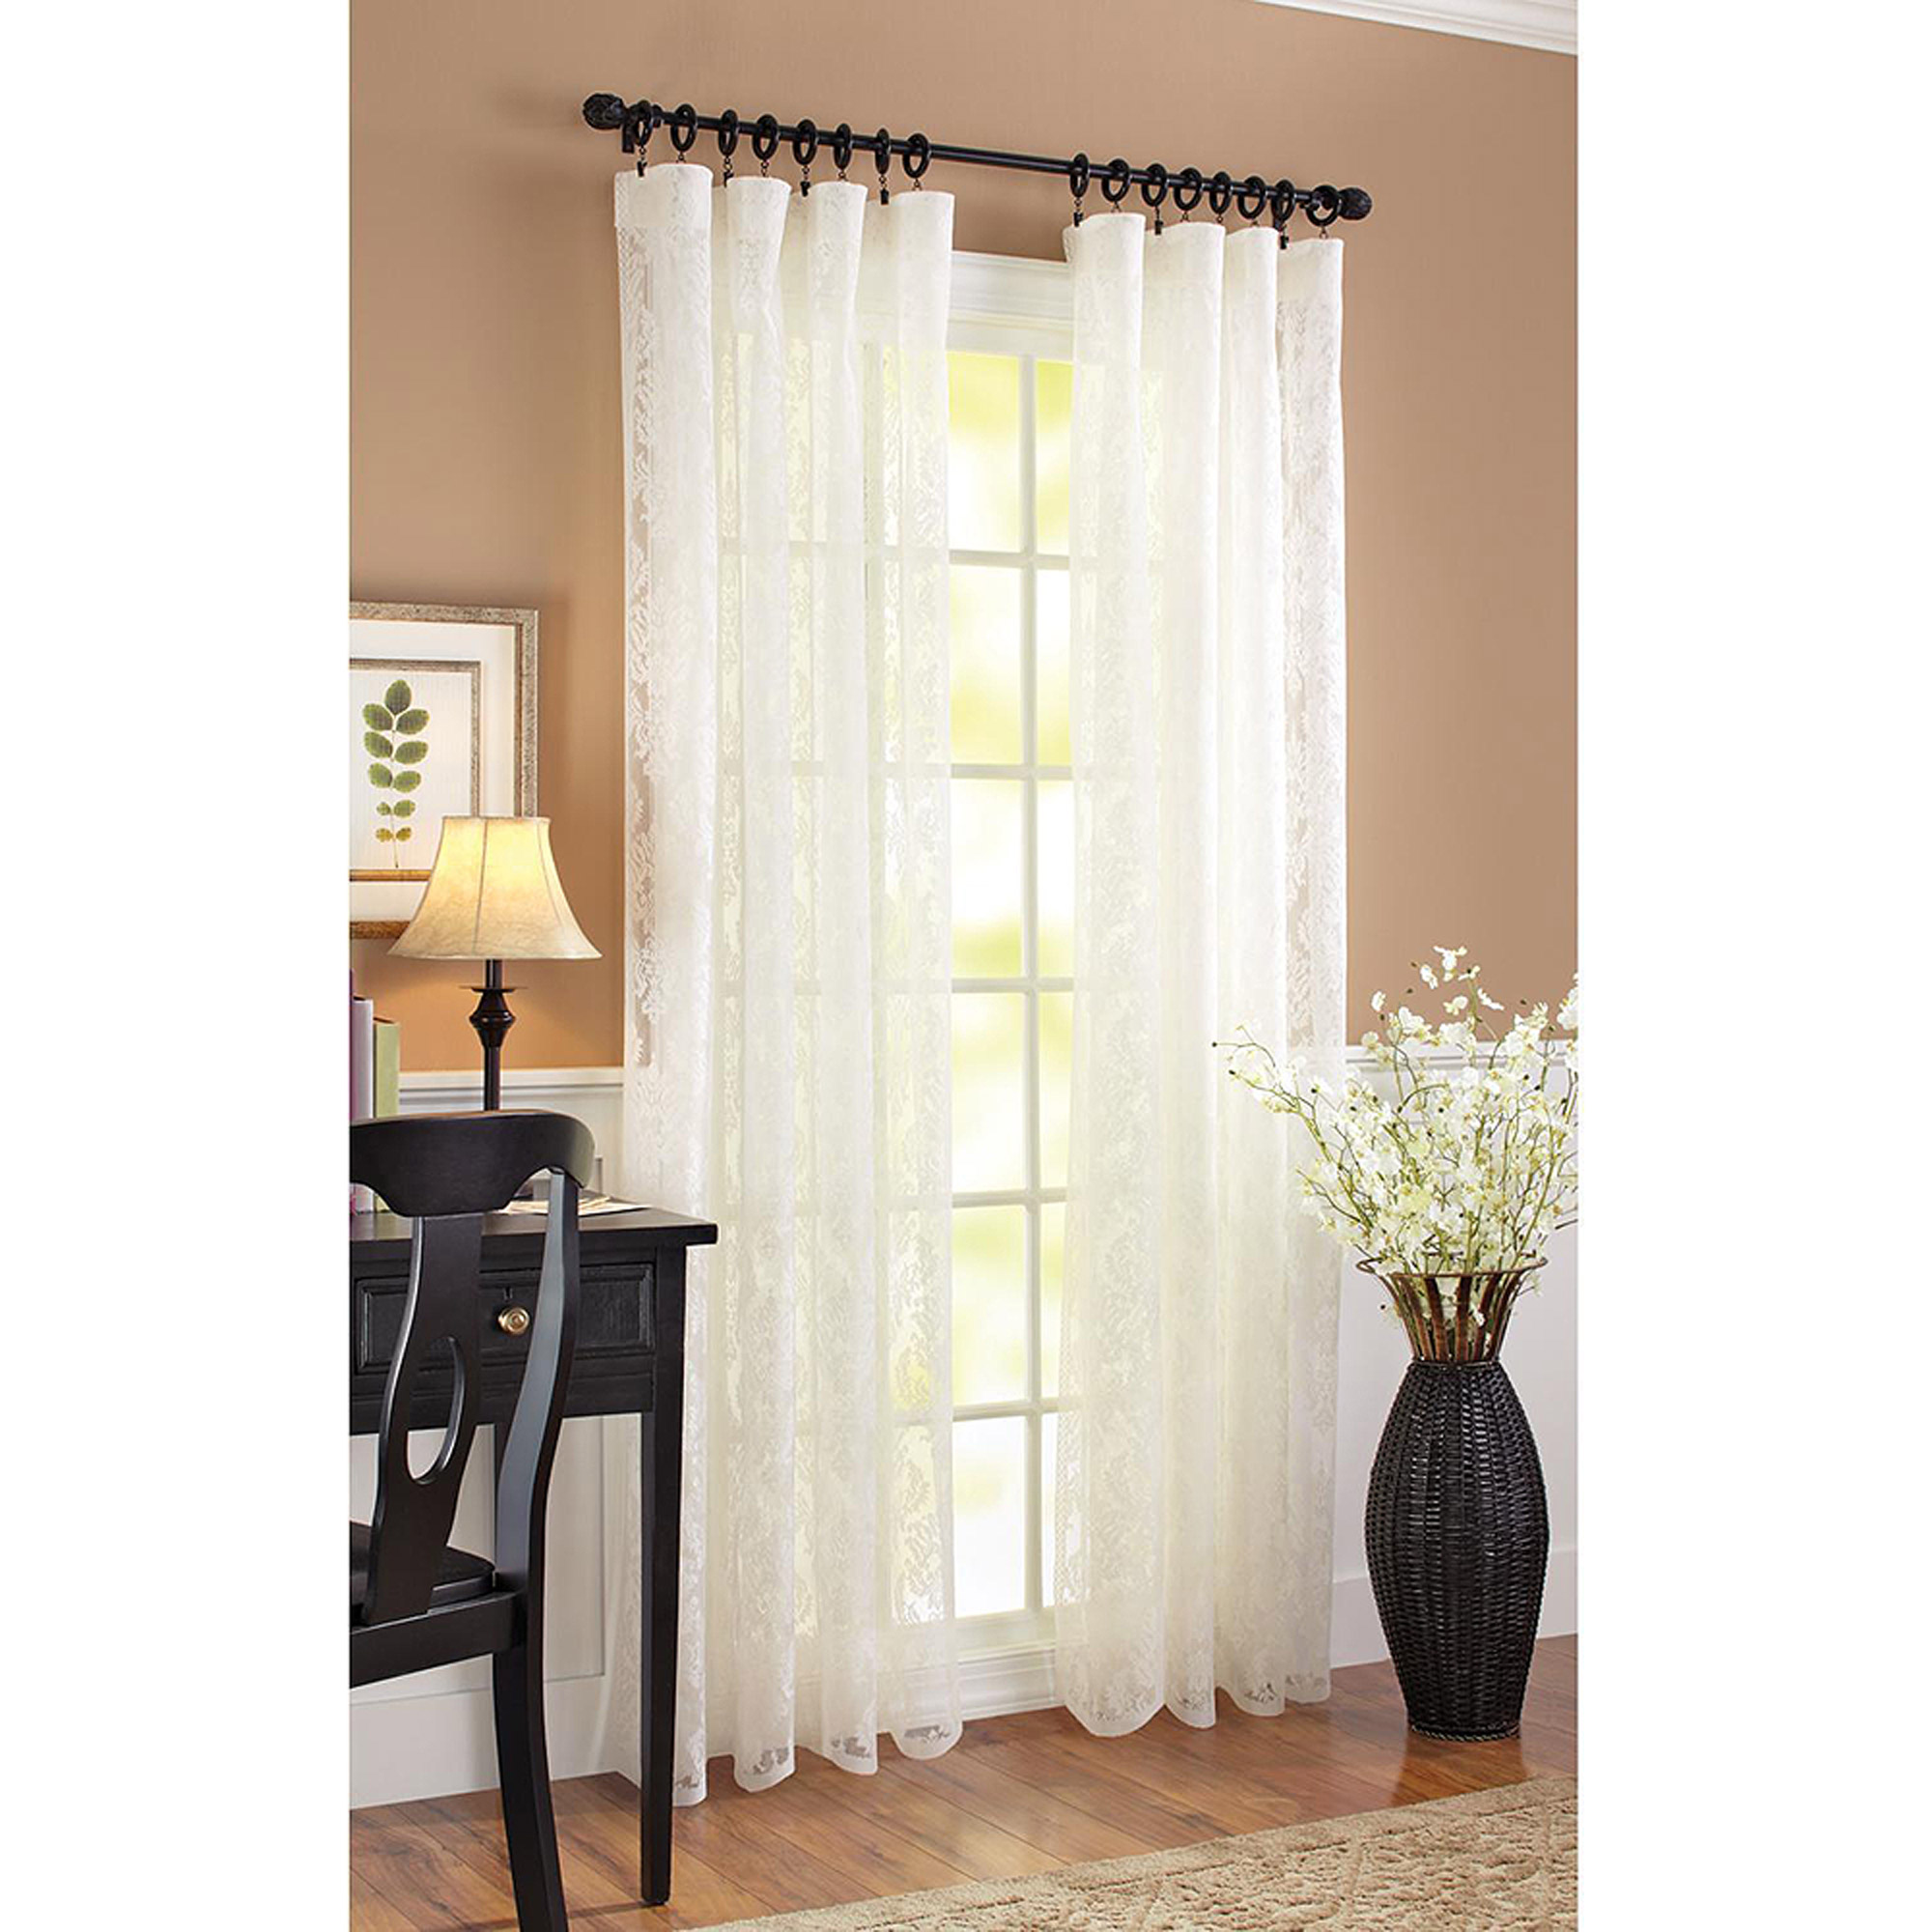 Curtains For Sale At Walmart Better Homes Gardens Damask Scroll Curtain Panel